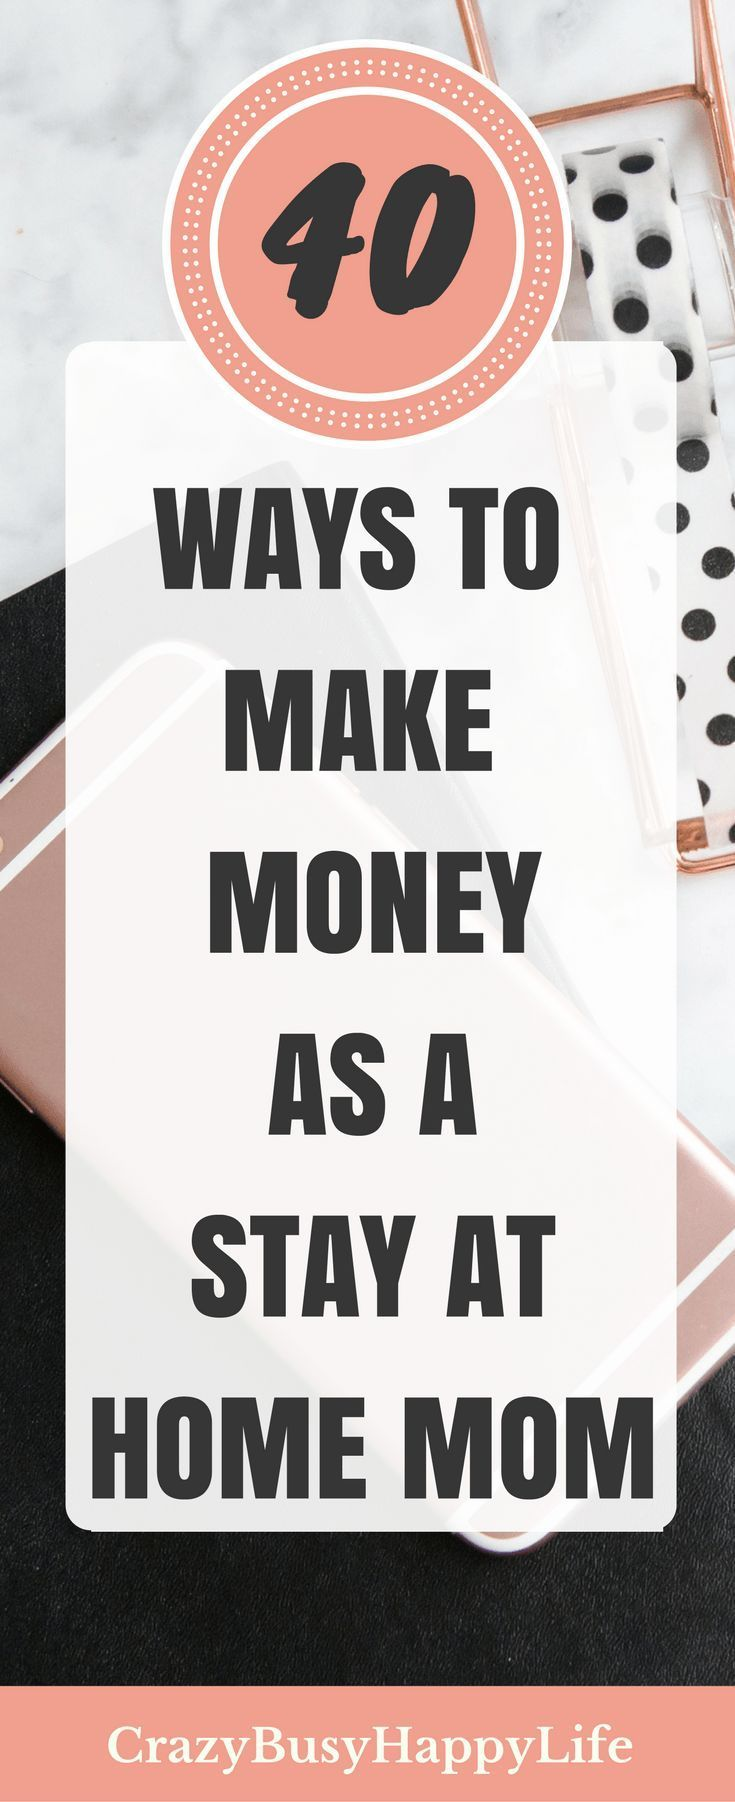 40 Ways to Make Money as a Stay At Home Mom - | Money Making Ideas ...